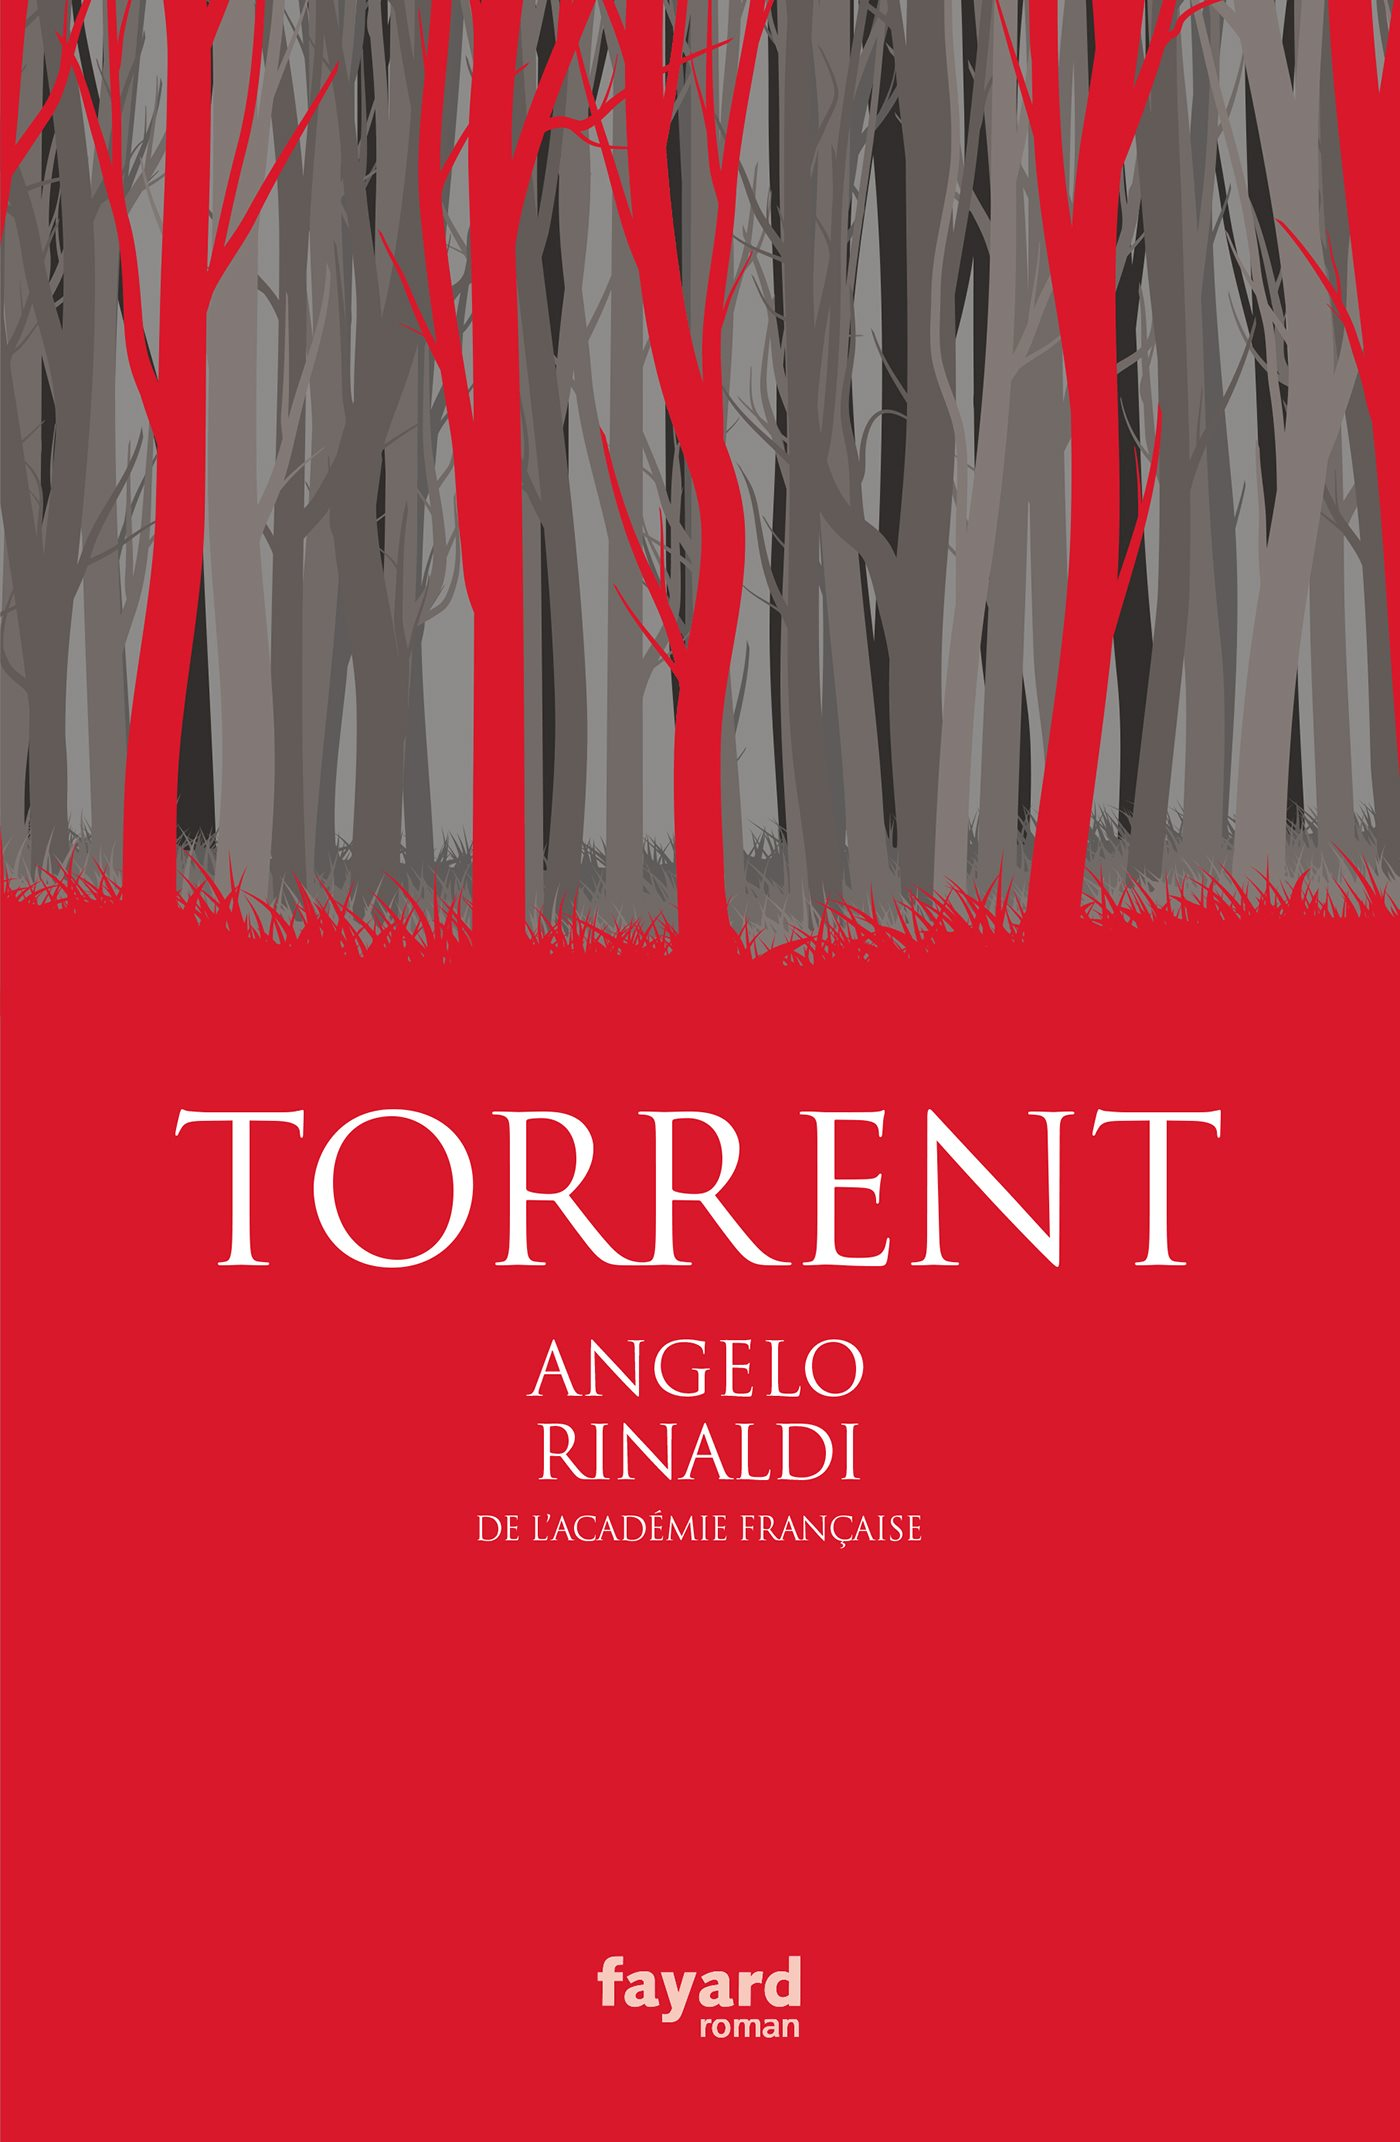 Couverture : Angelo Rinaldi, Torrent, Fayard